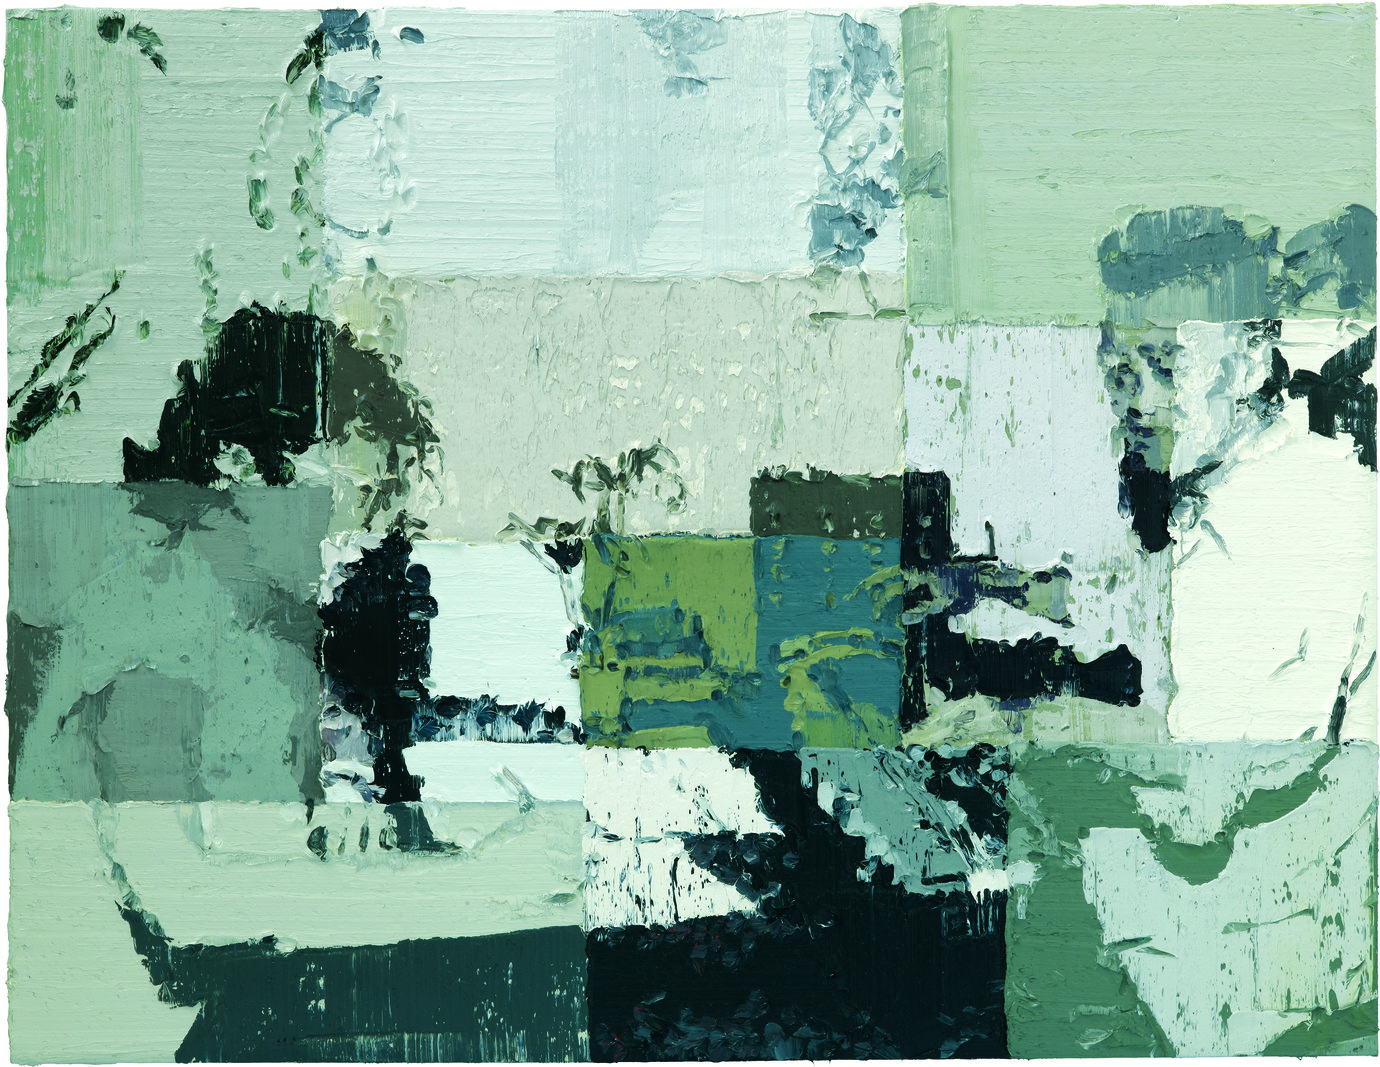 ", 2011. oil on canvas, 6' 6-3/4"" x 8' 6-3/8"" (200 cm x 260 cm)."